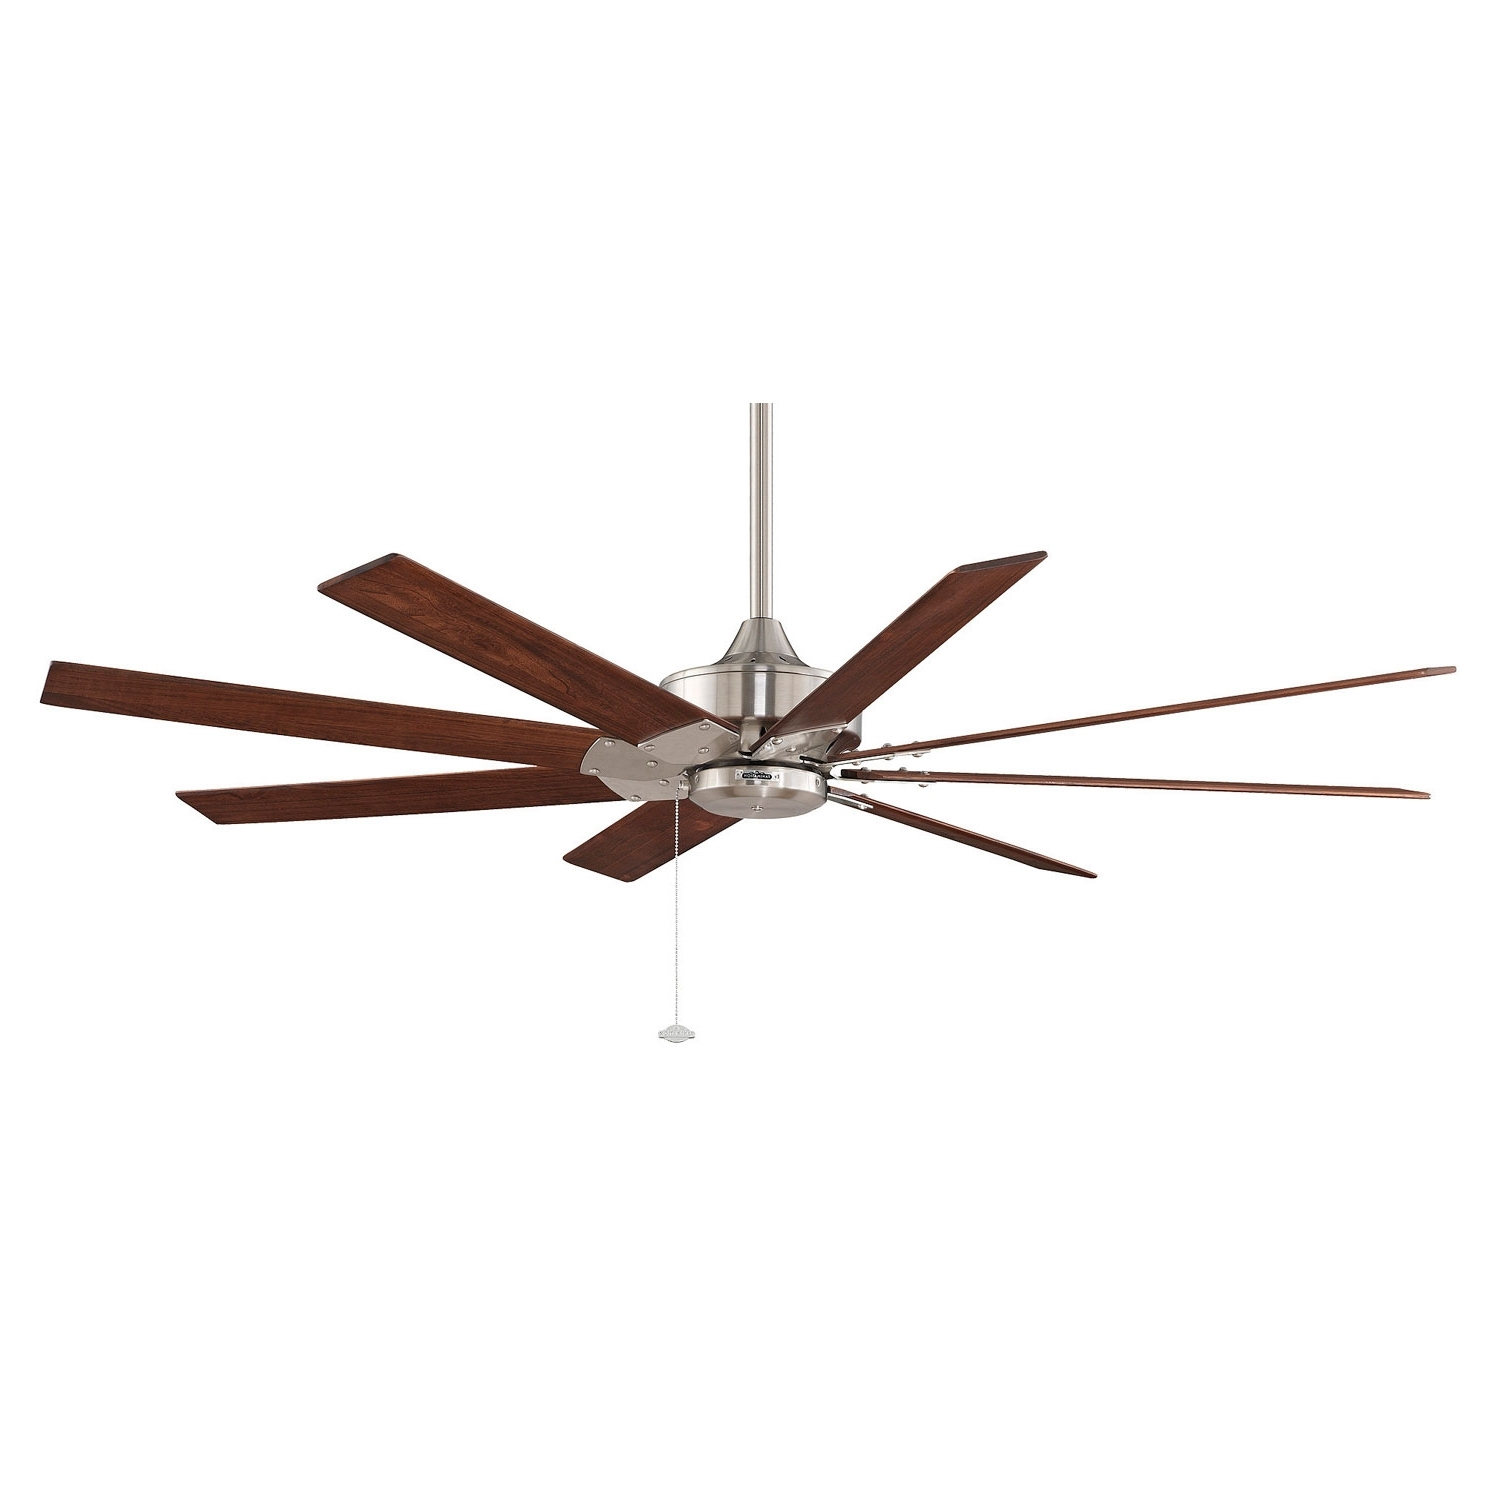 Well Liked Commercial Outdoor Ceiling Fans Inside Fanimation Levon Brushed Nickel 63 Inch Energy Star Ceiling Fan With (Gallery 19 of 20)